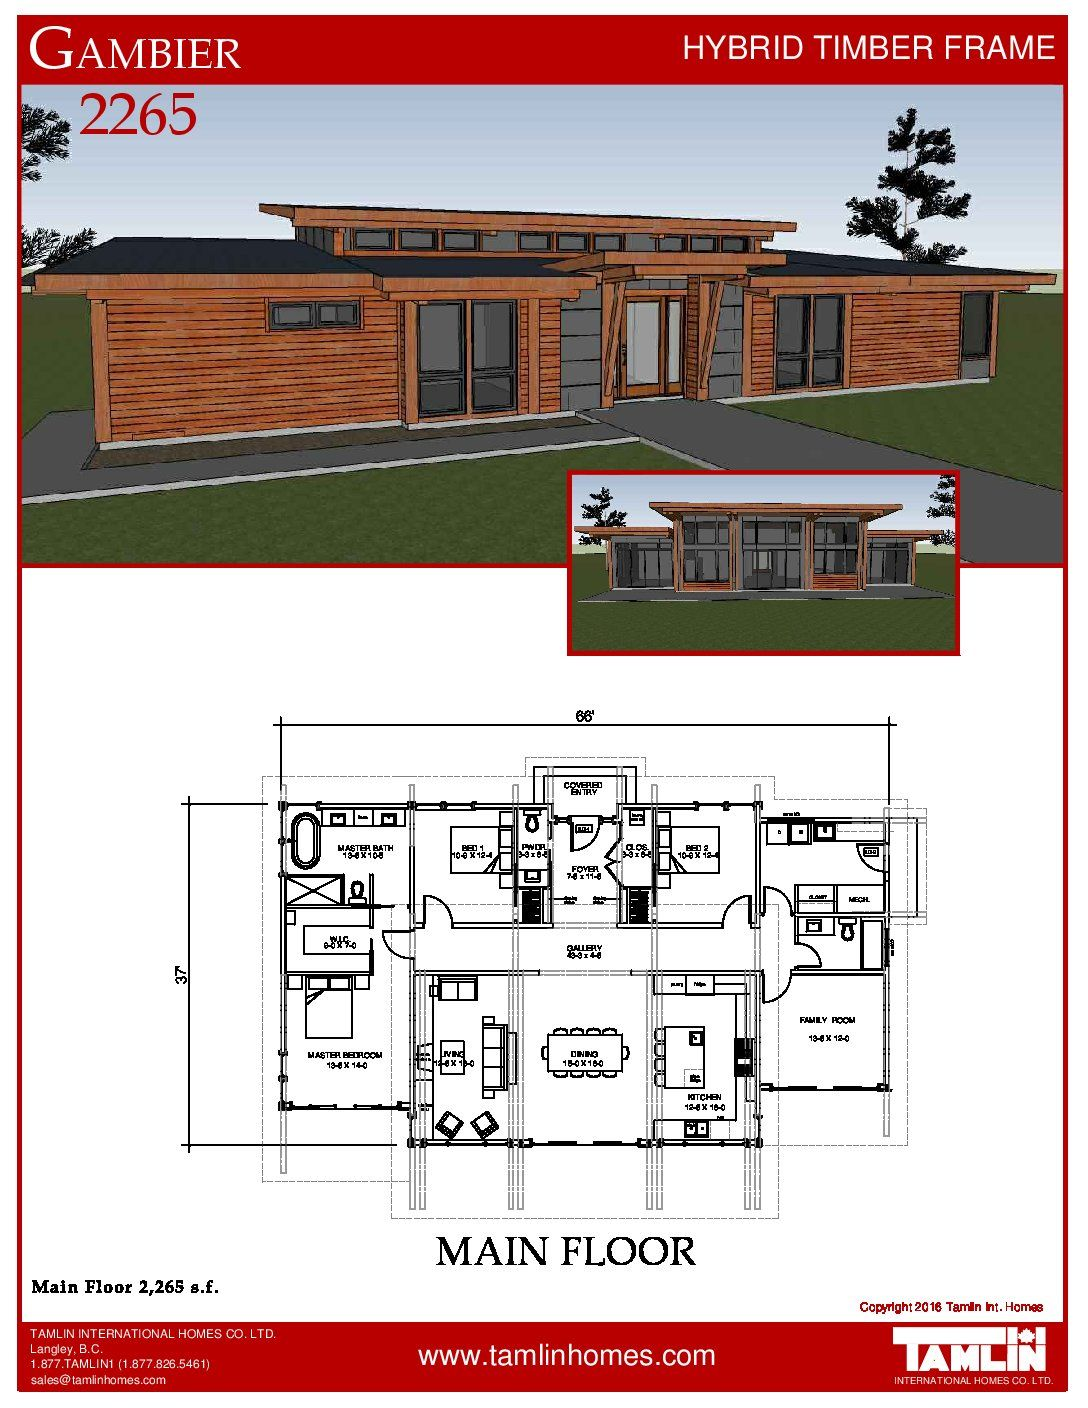 The Gambier Harbour 2 Usa Specials Tamlin International Homes Ltd House Designs Ireland Cottage Plan House Plan Gallery